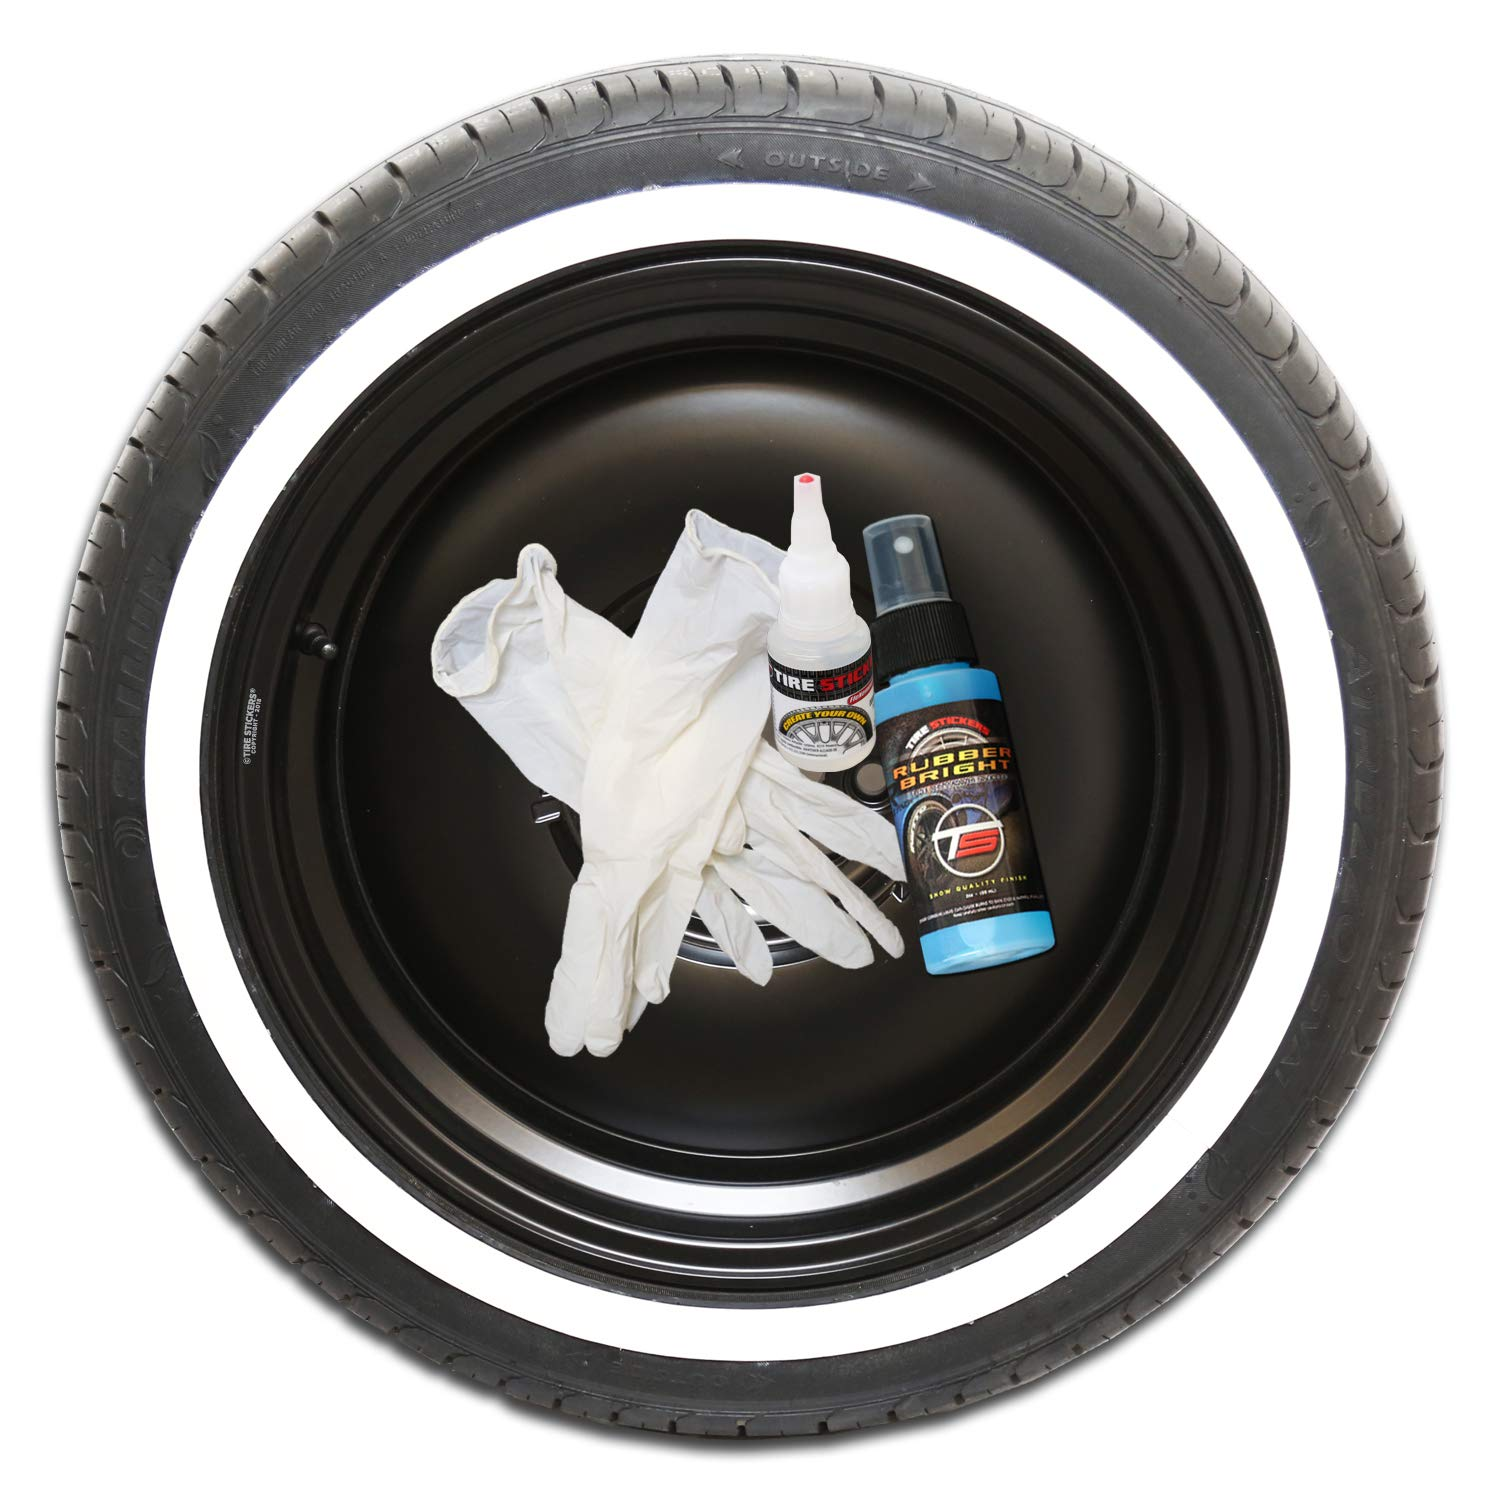 Amazon com tire stickers white wall tire kit do it yourself rubber white wall application kit all 4 tires custom sizing thickness automotive